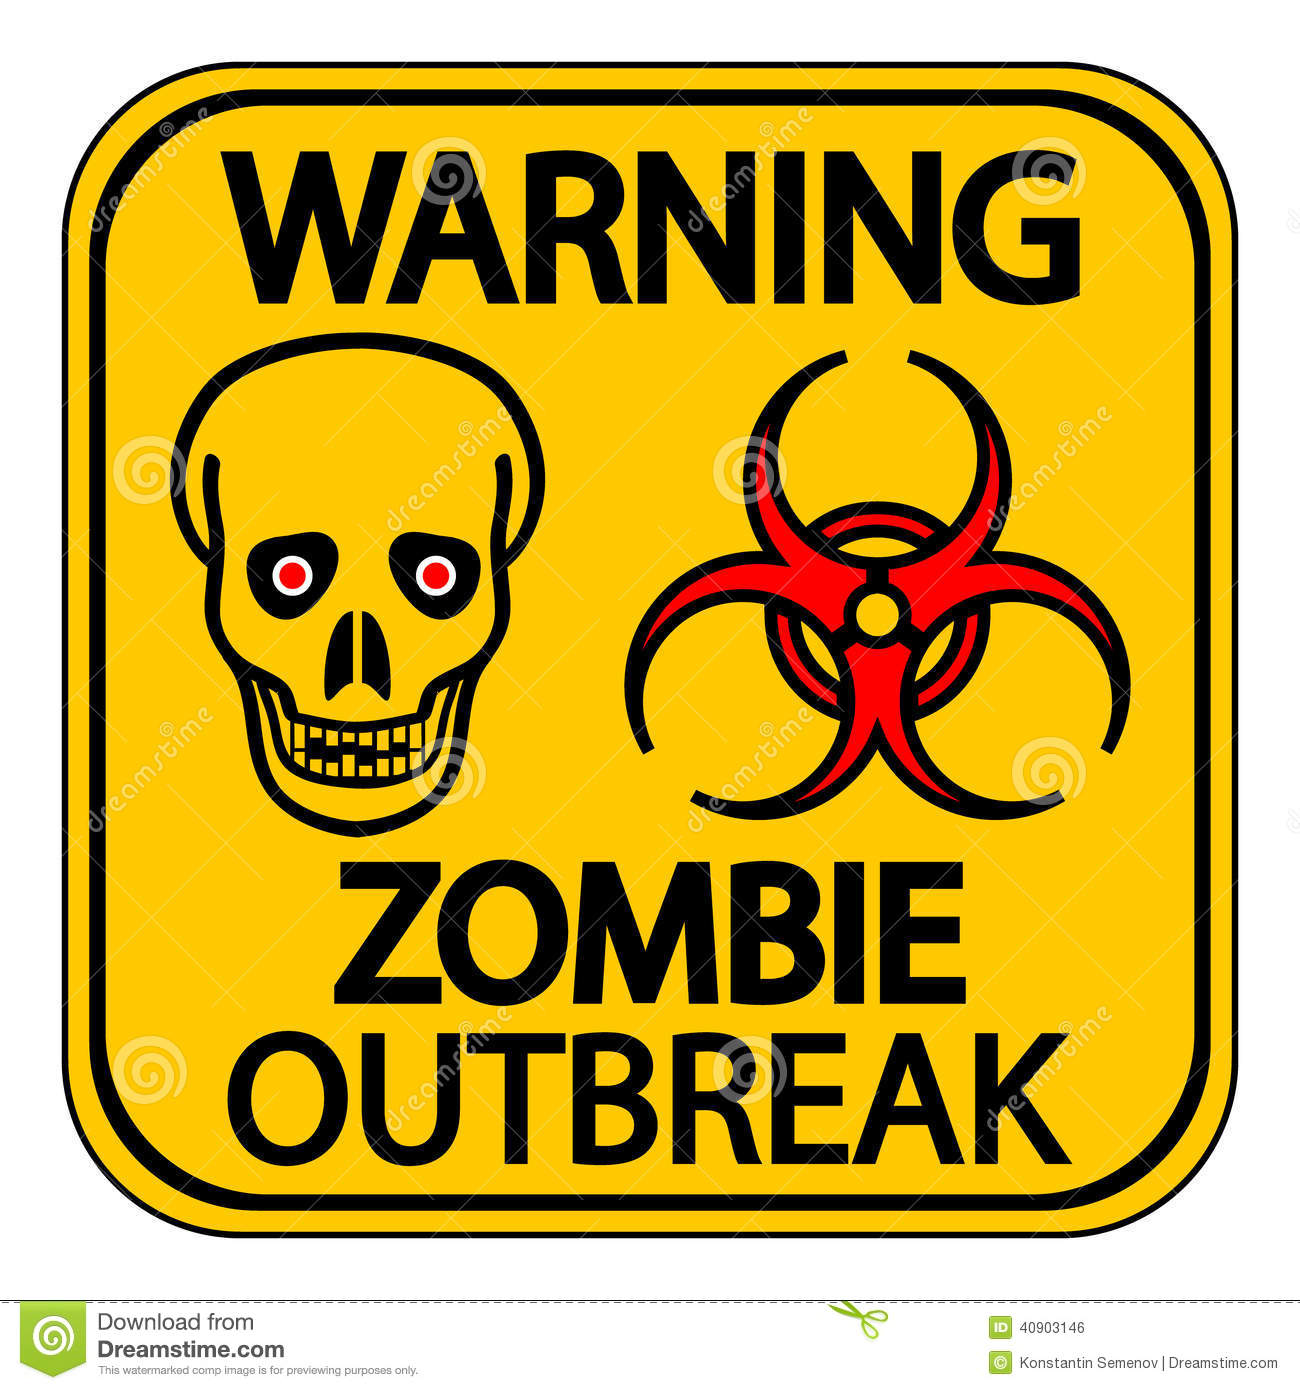 Warning Zombie Outbreak Stock Vector - Image: 40903146